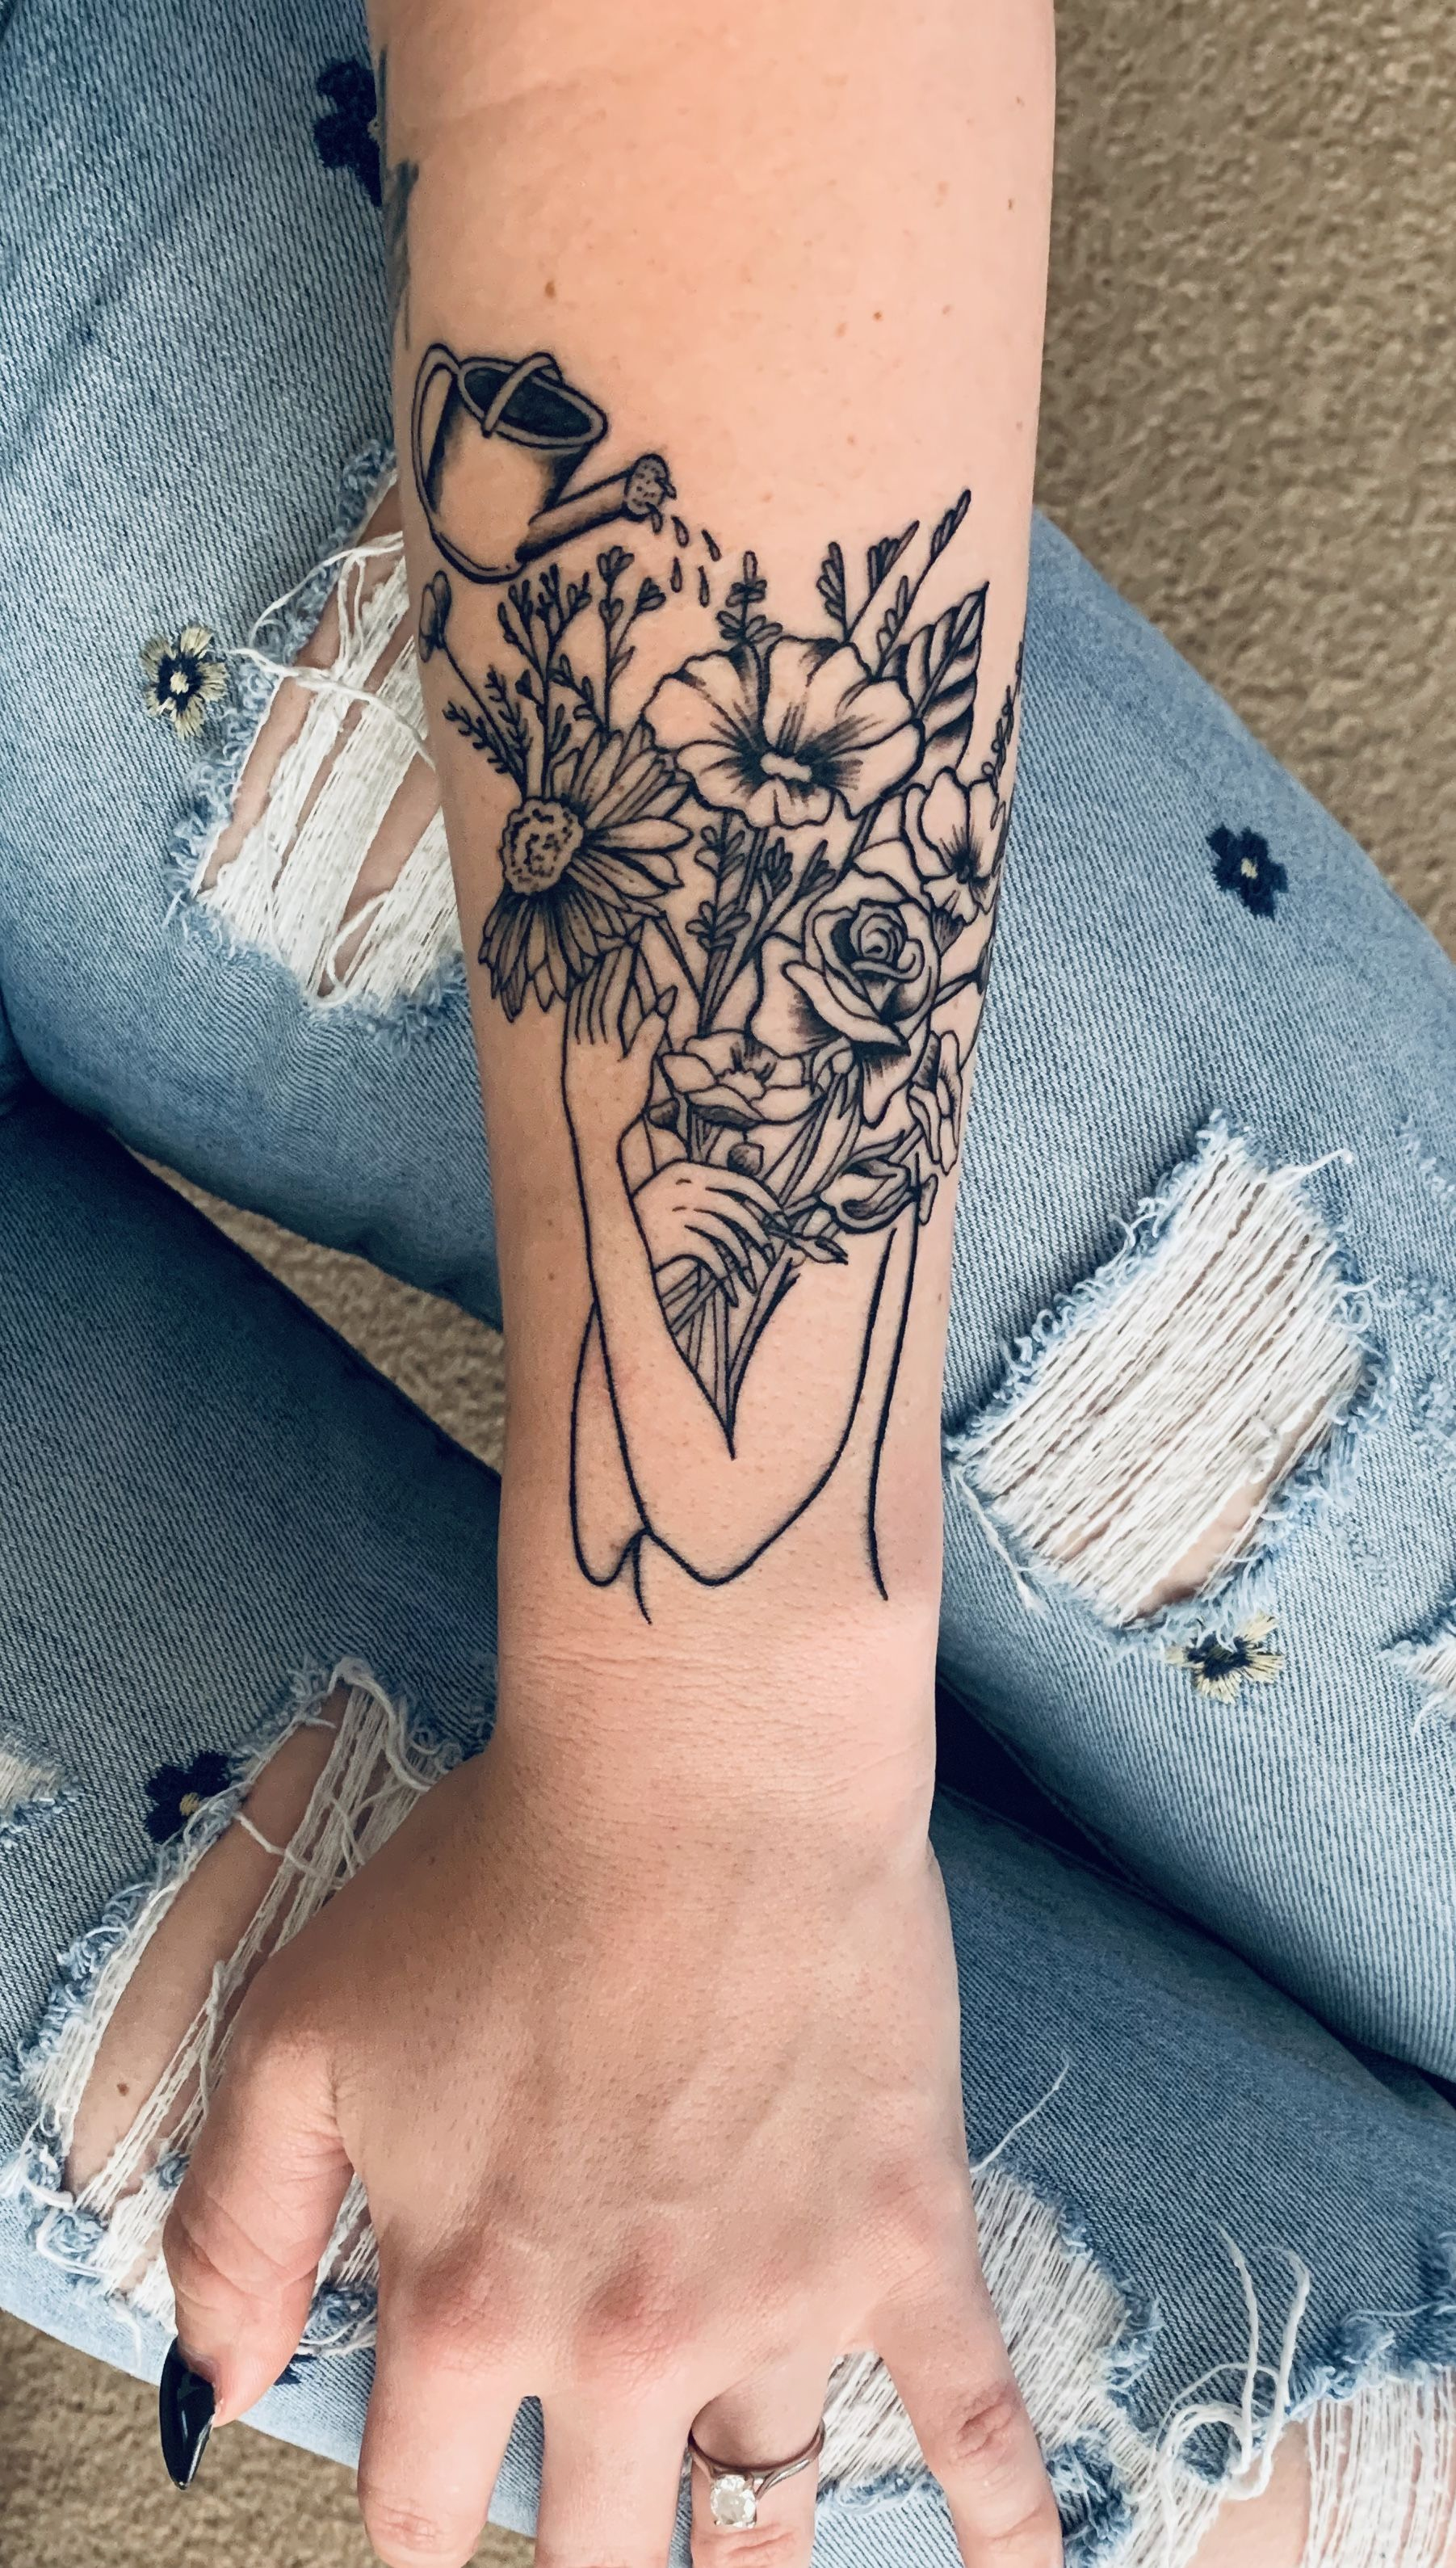 Self love tattoo